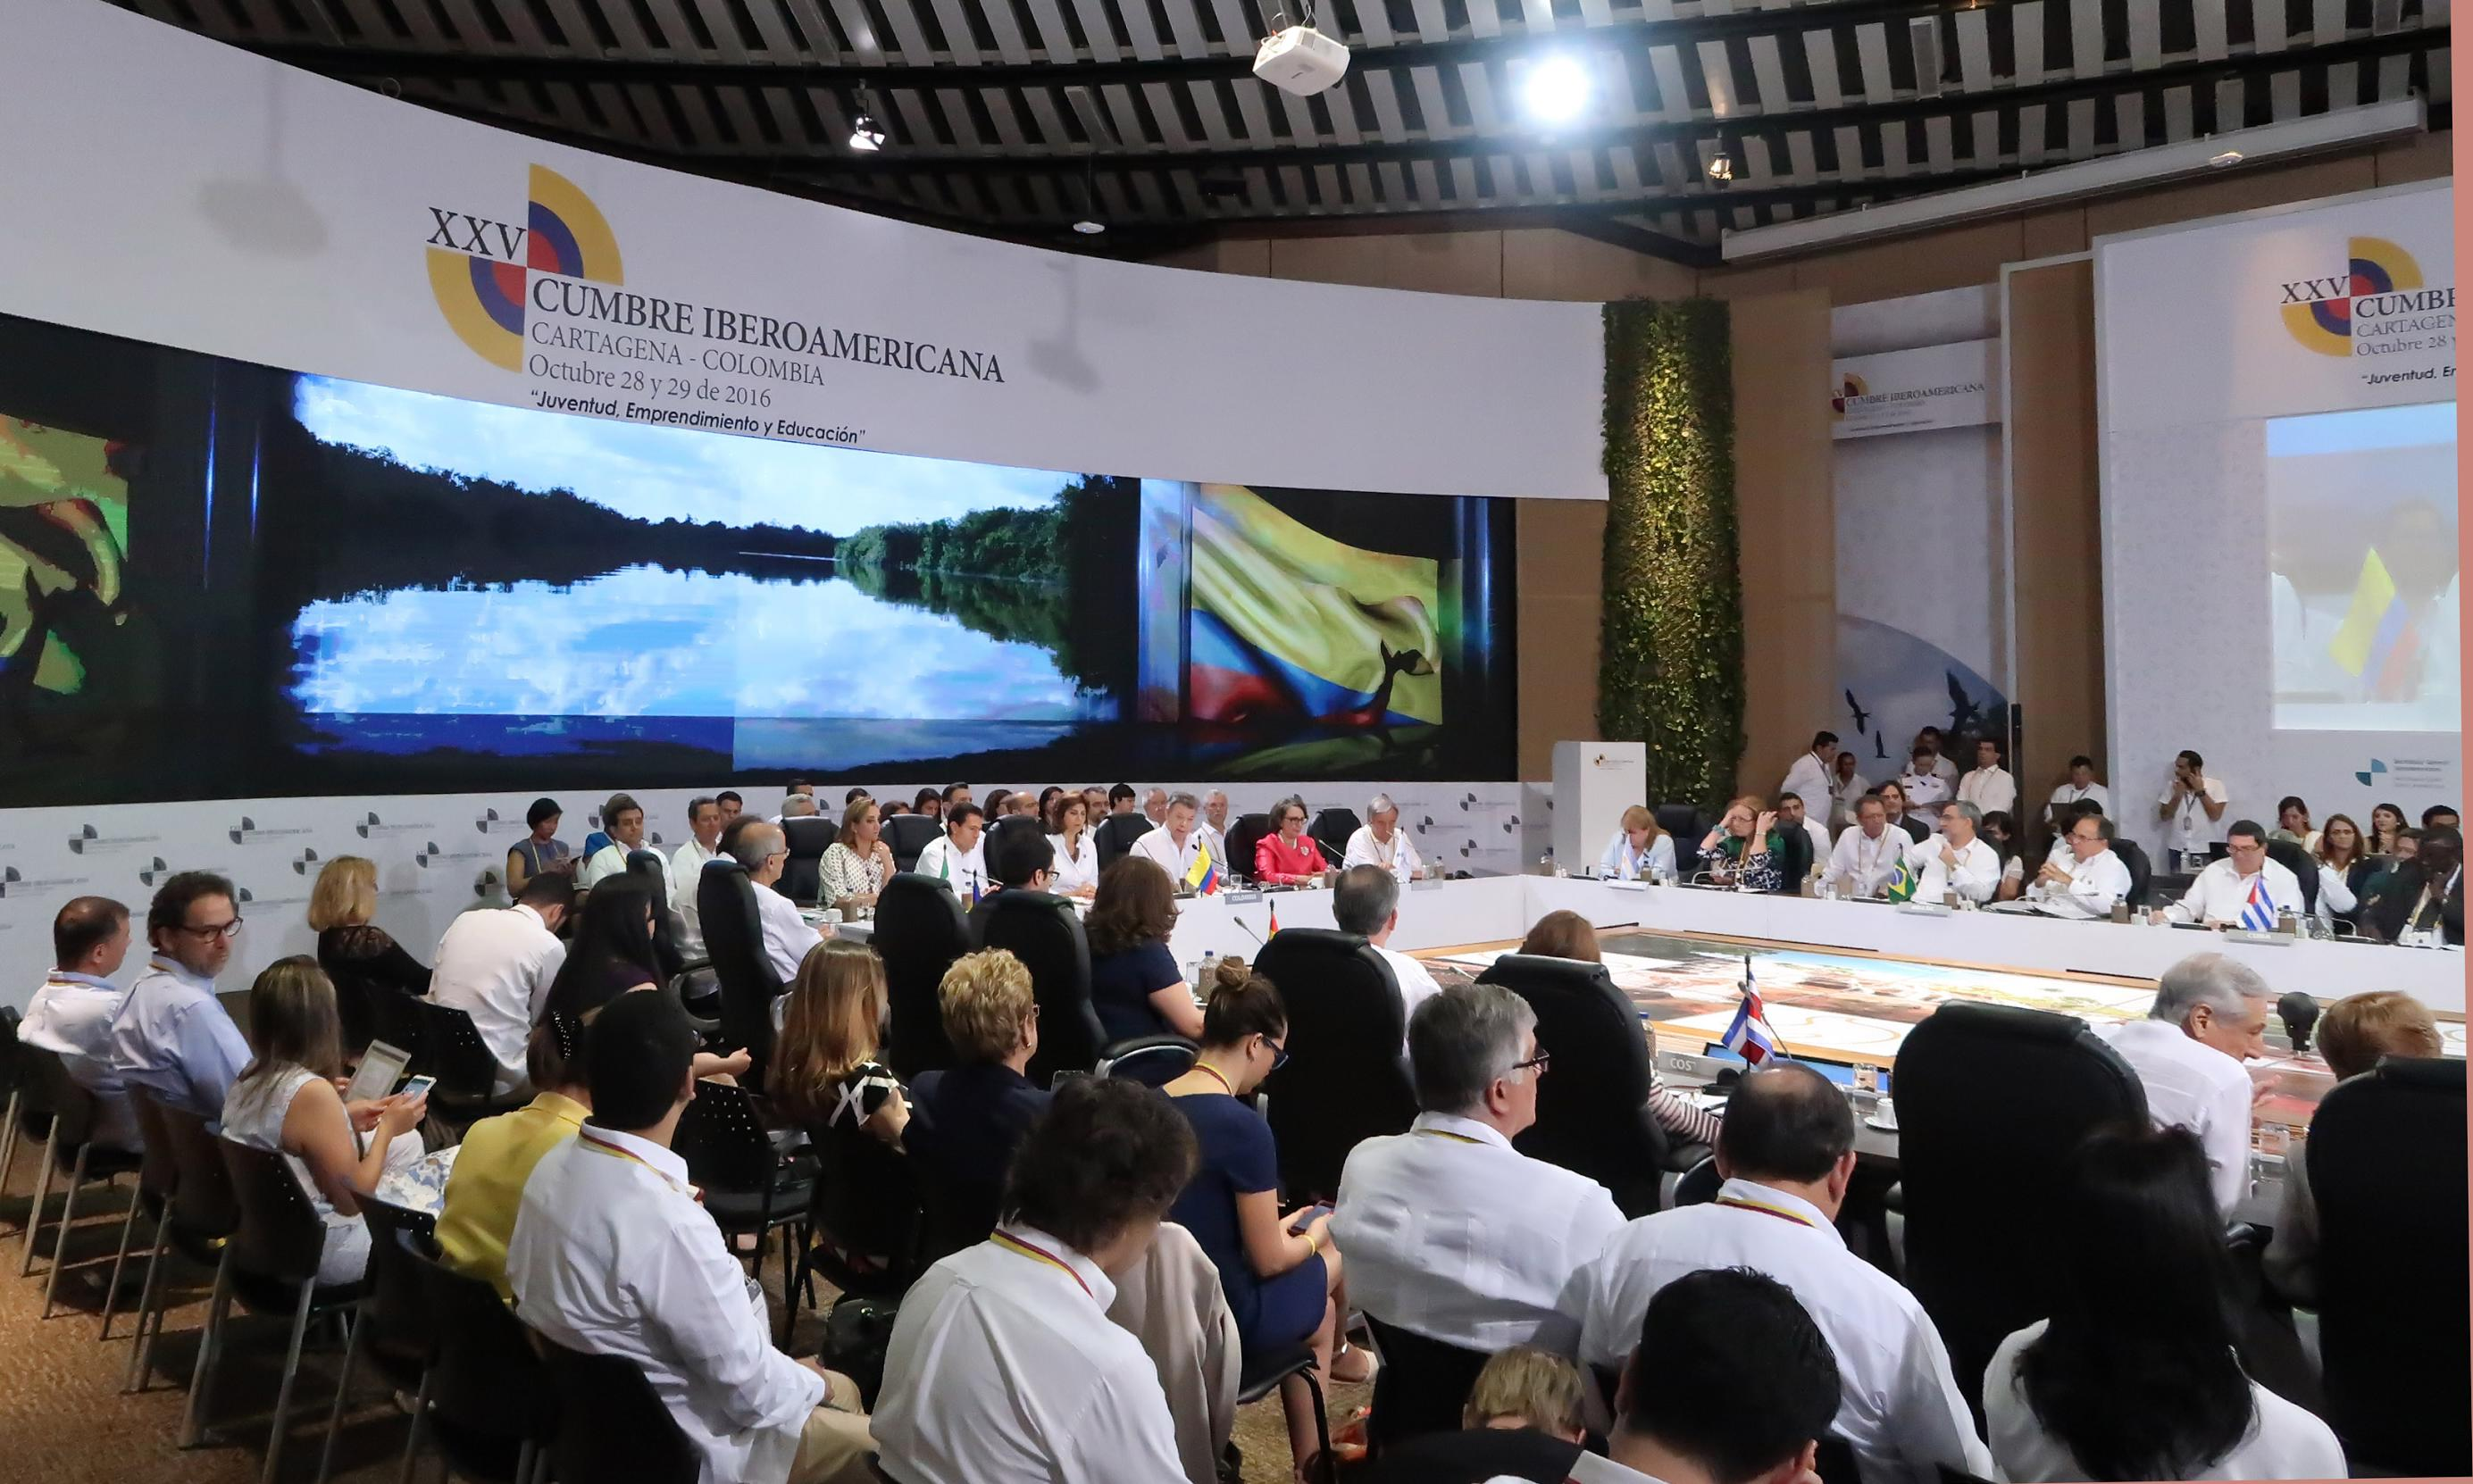 The president participated in the first working session of the 25th Ibero-American Summit in Cartagena de Indias, Colombia.